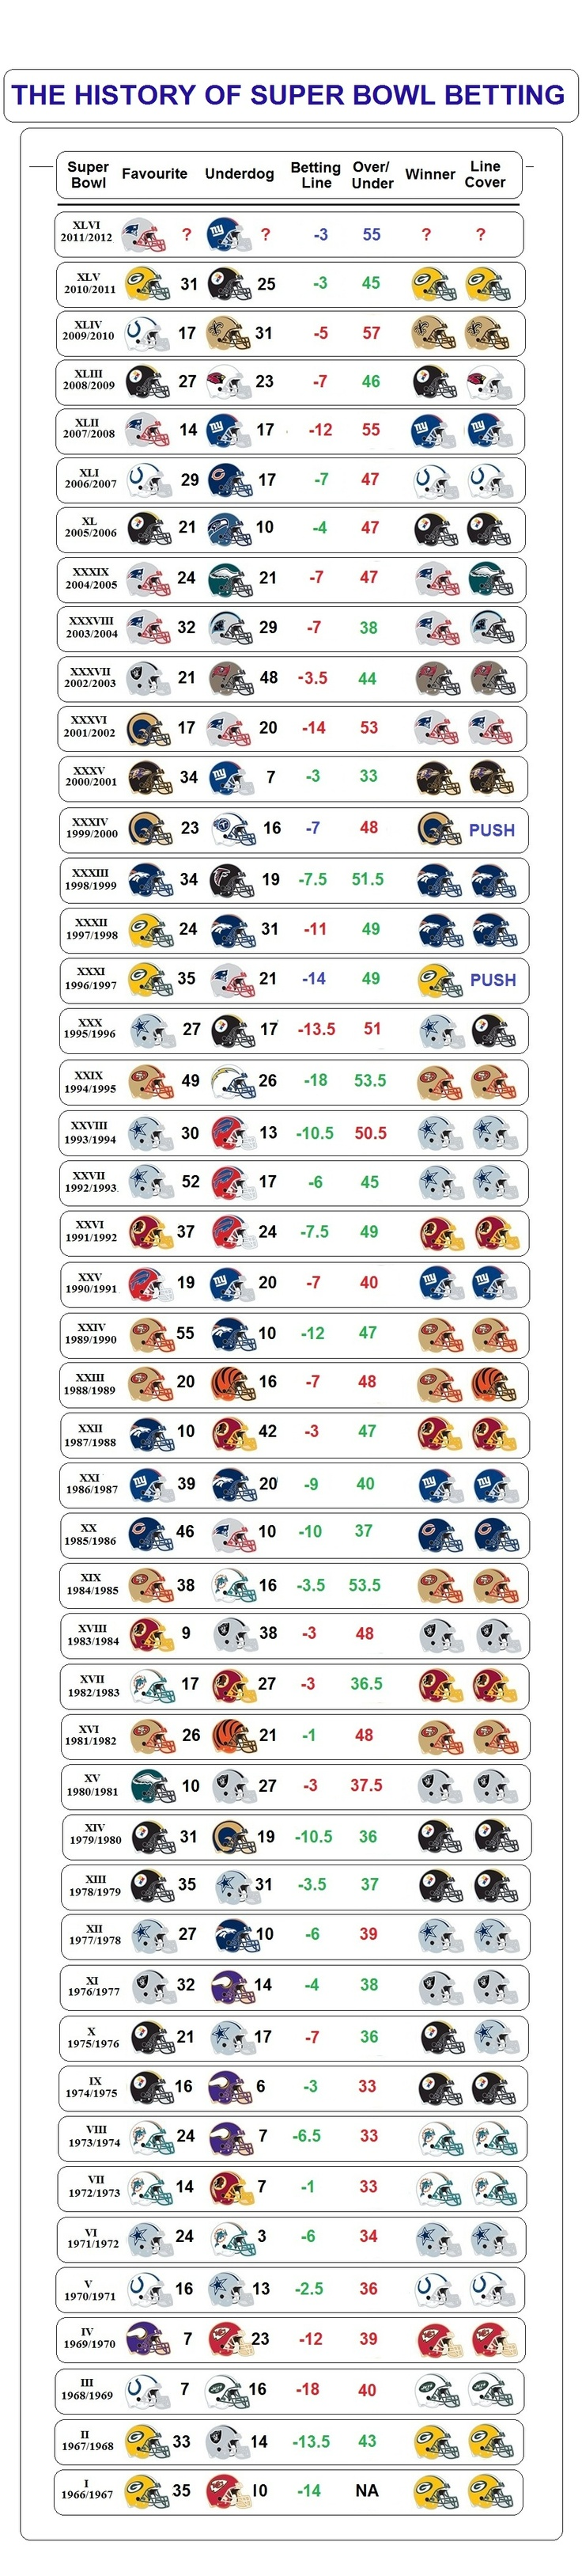 History of Super Bowl betting